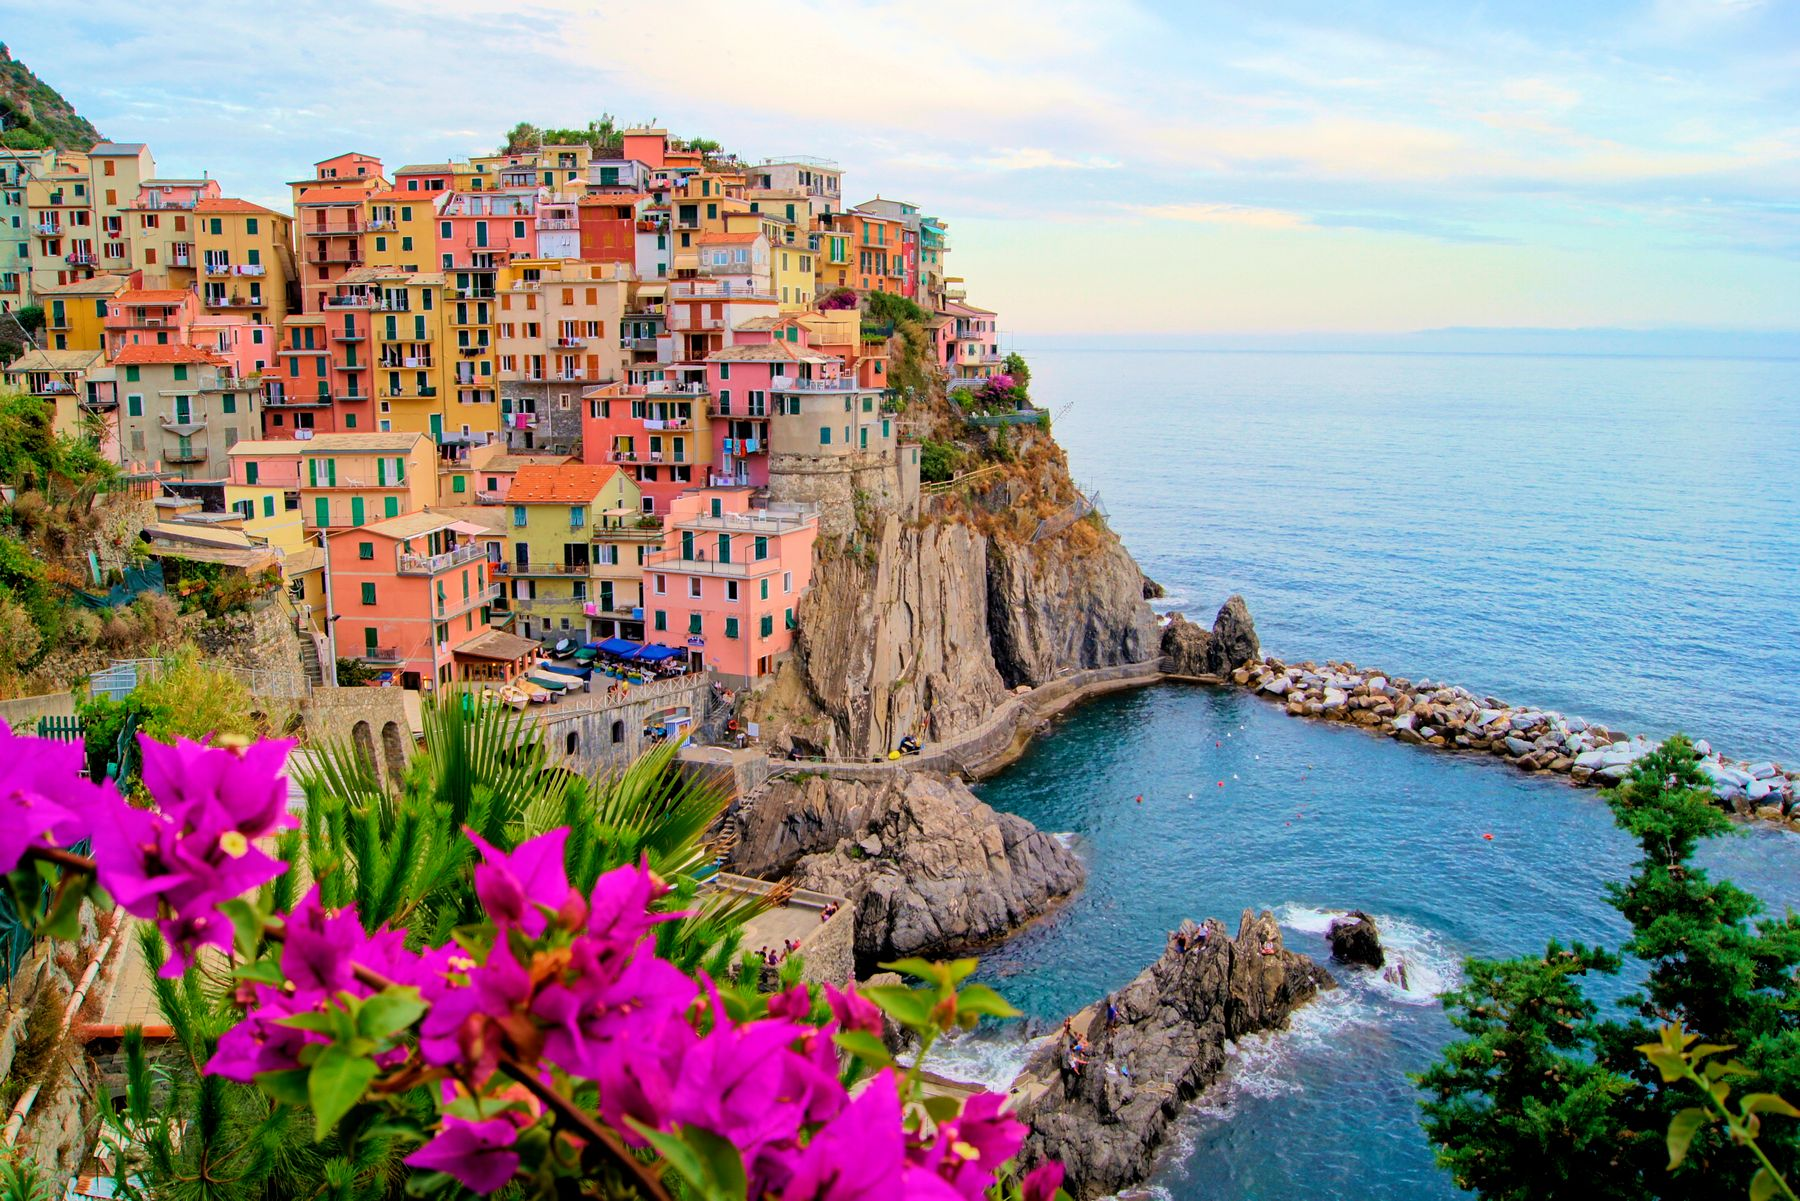 The colourful cliffside houses of Cinque Terre in Italy